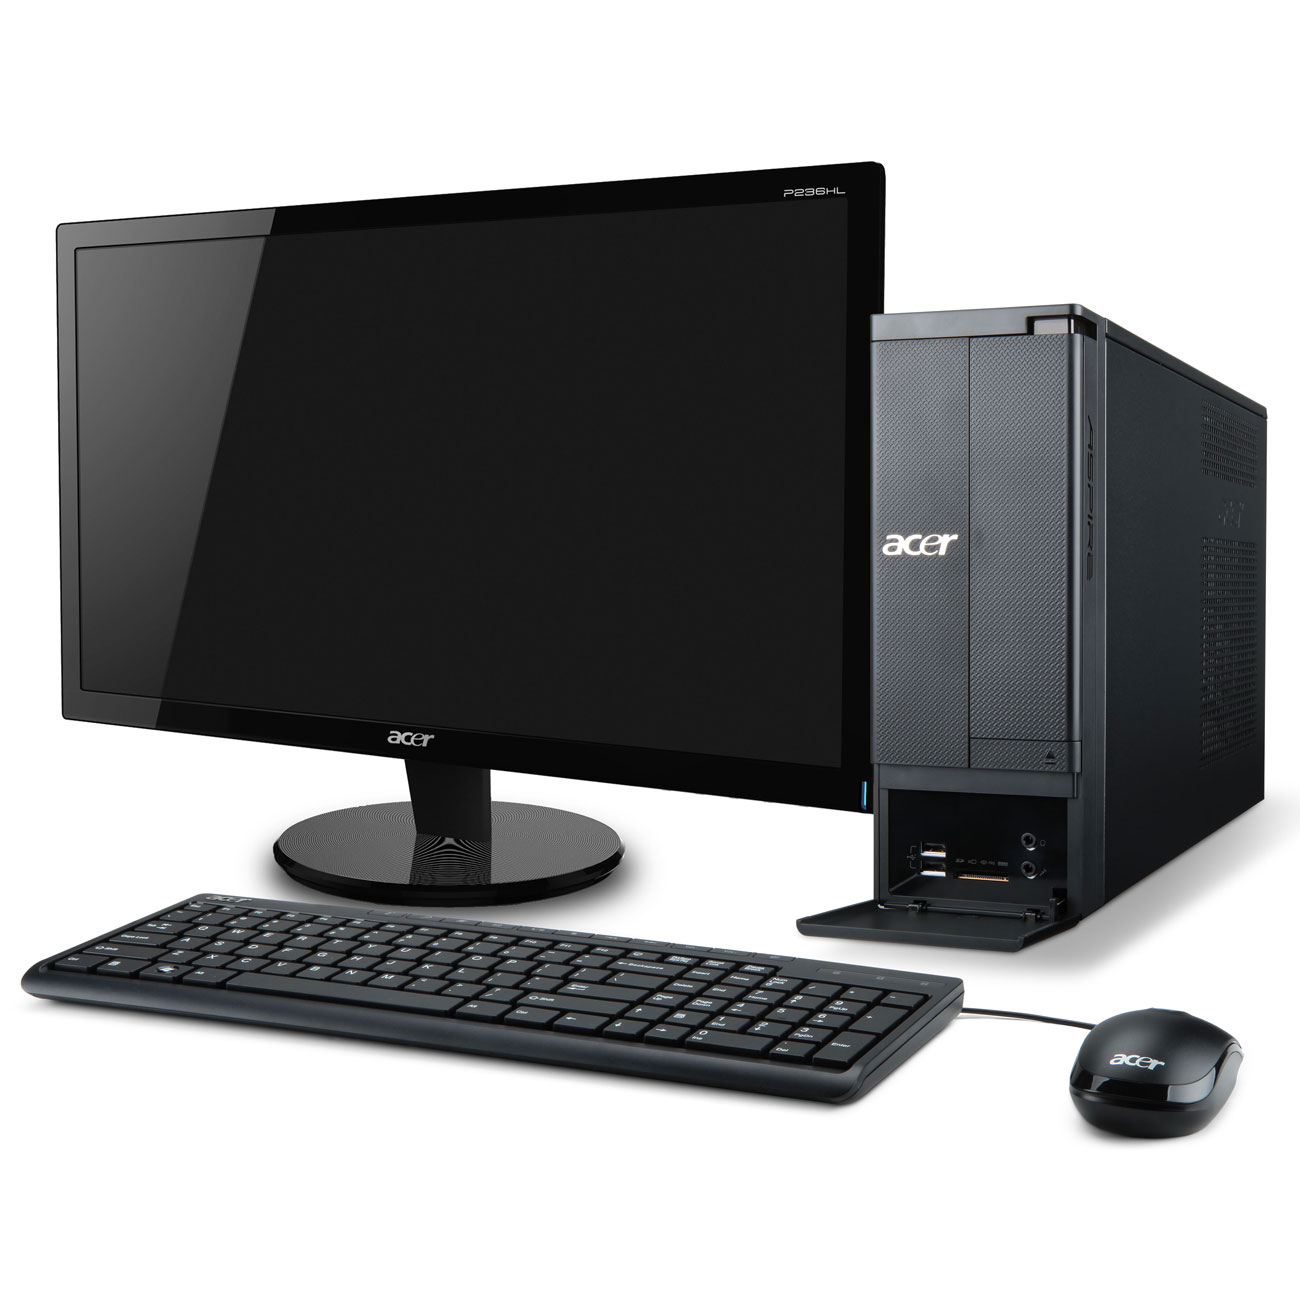 acer aspire x1430 006 ob 21 5 pc de bureau acer sur. Black Bedroom Furniture Sets. Home Design Ideas